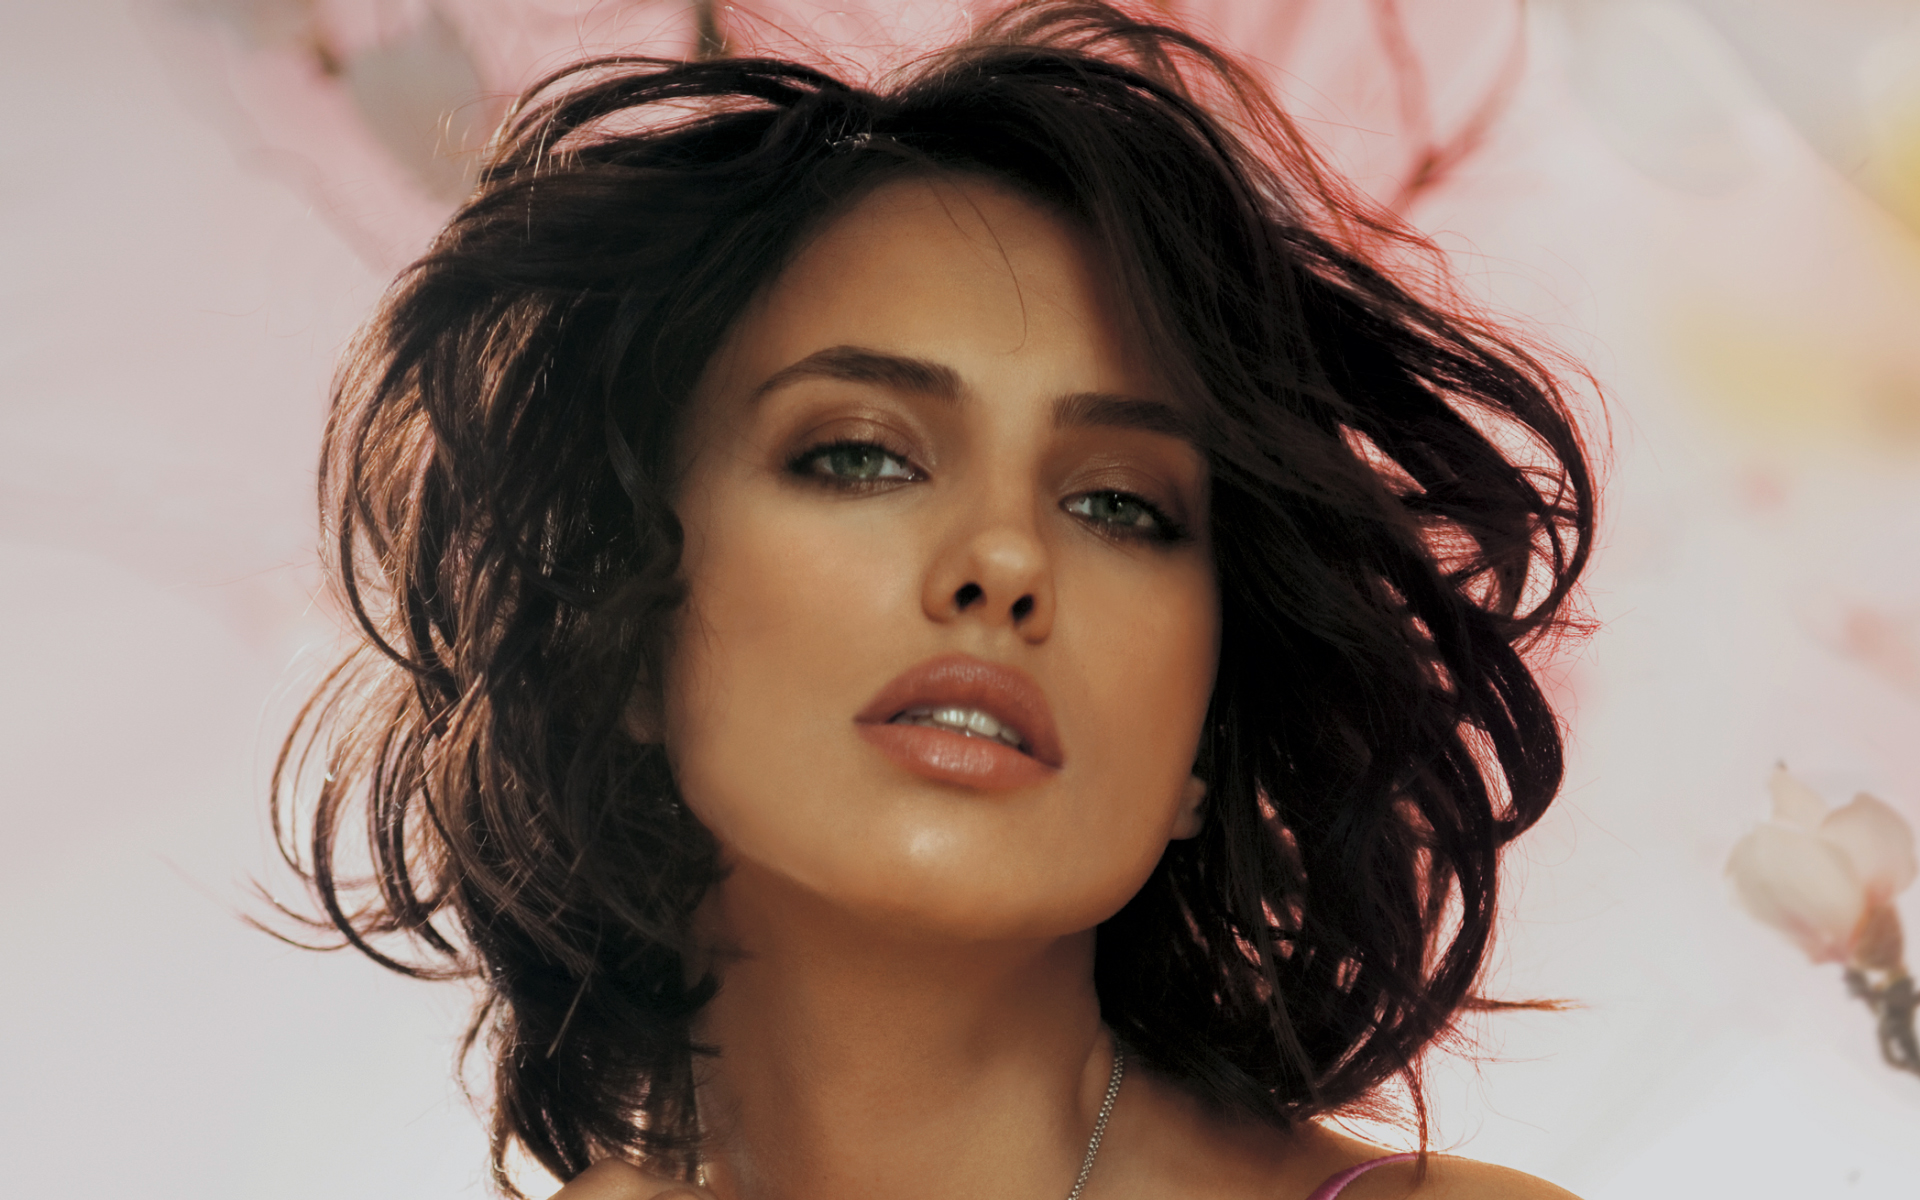 irina shayk woman HD Wallpaper